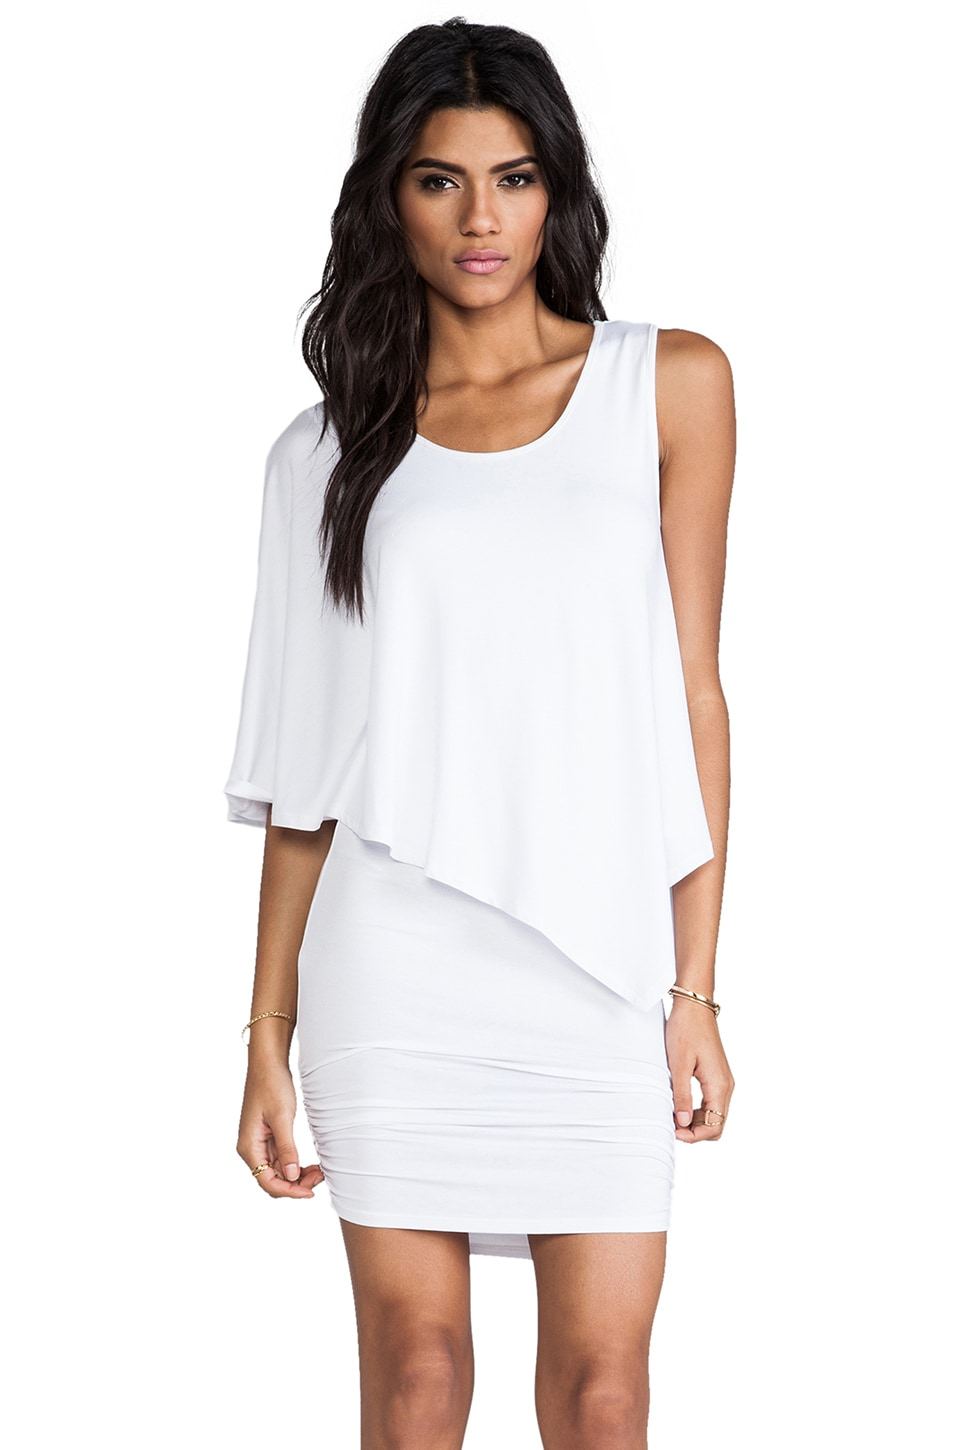 James & Joy Roxie Dress in White